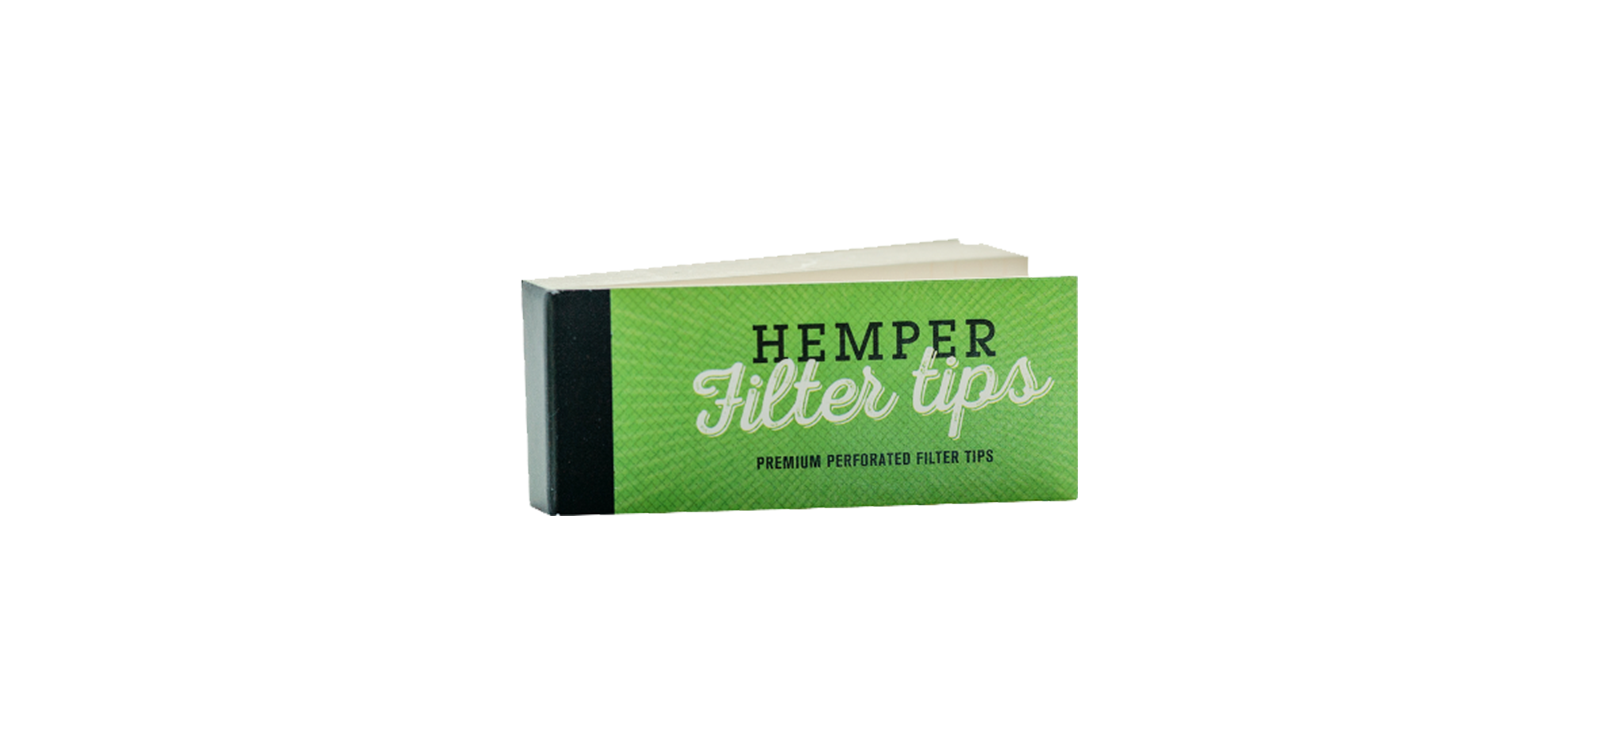 HEMPER Perforated Filter Tips